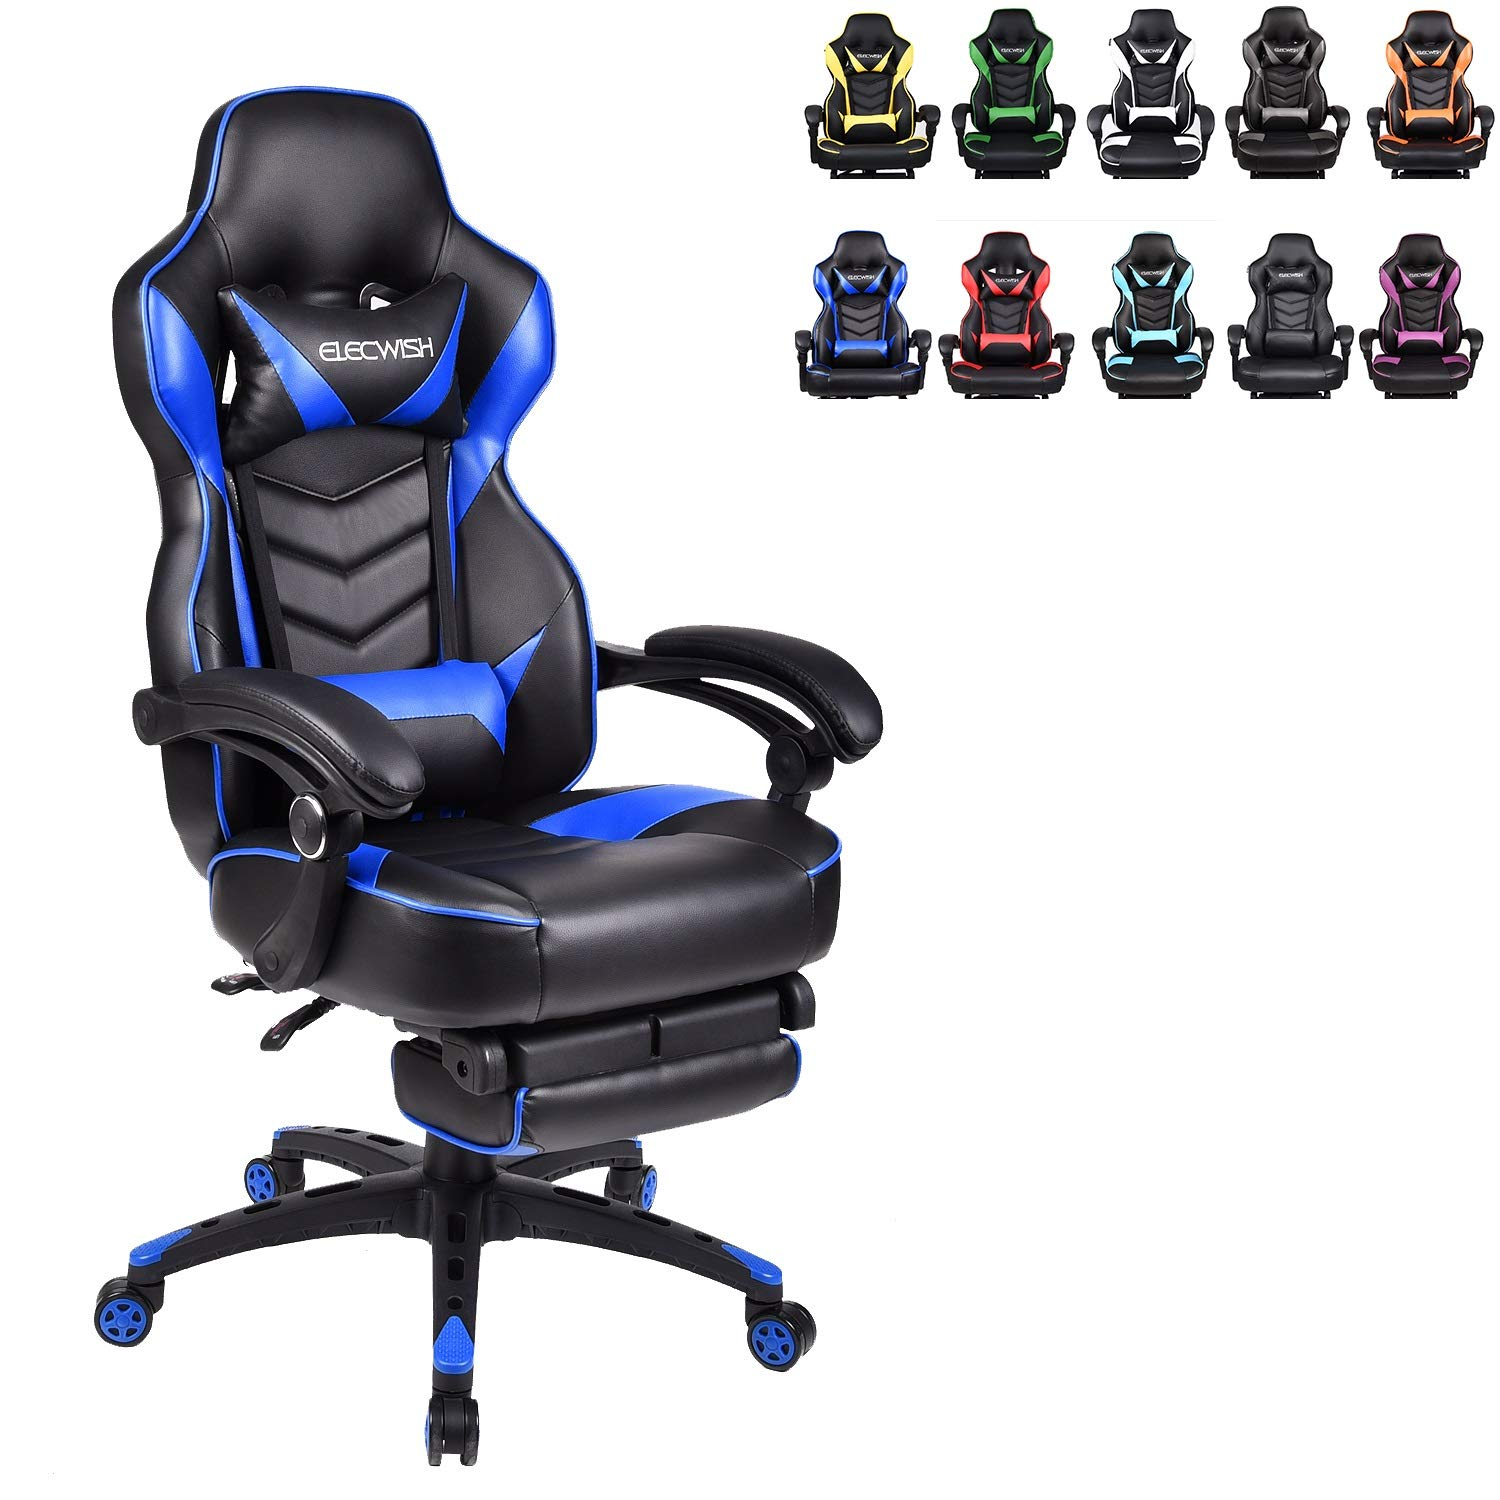 ELECWISH Ergonomic Computer Gaming Chair, PU Leather High Back Office Racing Chairs